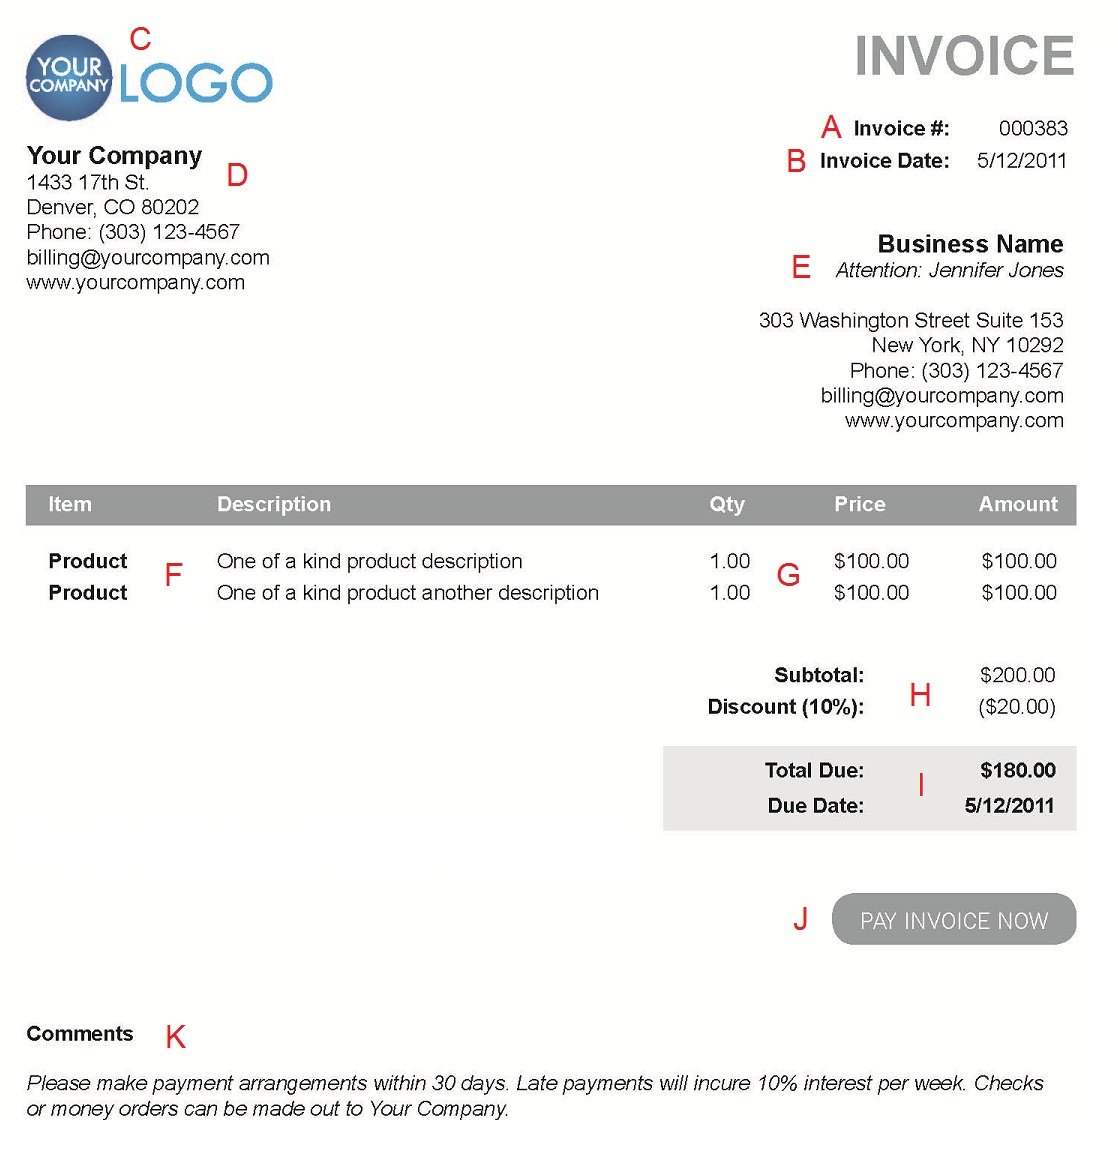 Occupyhistoryus  Nice The  Different Sections Of An Electronic Payment Invoice With Lovely A  With Awesome Invoice Factoring Quotes Also Mazda  Invoice Price In Addition Invoice Capture And Free Fillable Invoice Template As Well As Sample Photography Invoice Additionally Draft Invoice From Paysimplecom With Occupyhistoryus  Lovely The  Different Sections Of An Electronic Payment Invoice With Awesome A  And Nice Invoice Factoring Quotes Also Mazda  Invoice Price In Addition Invoice Capture From Paysimplecom